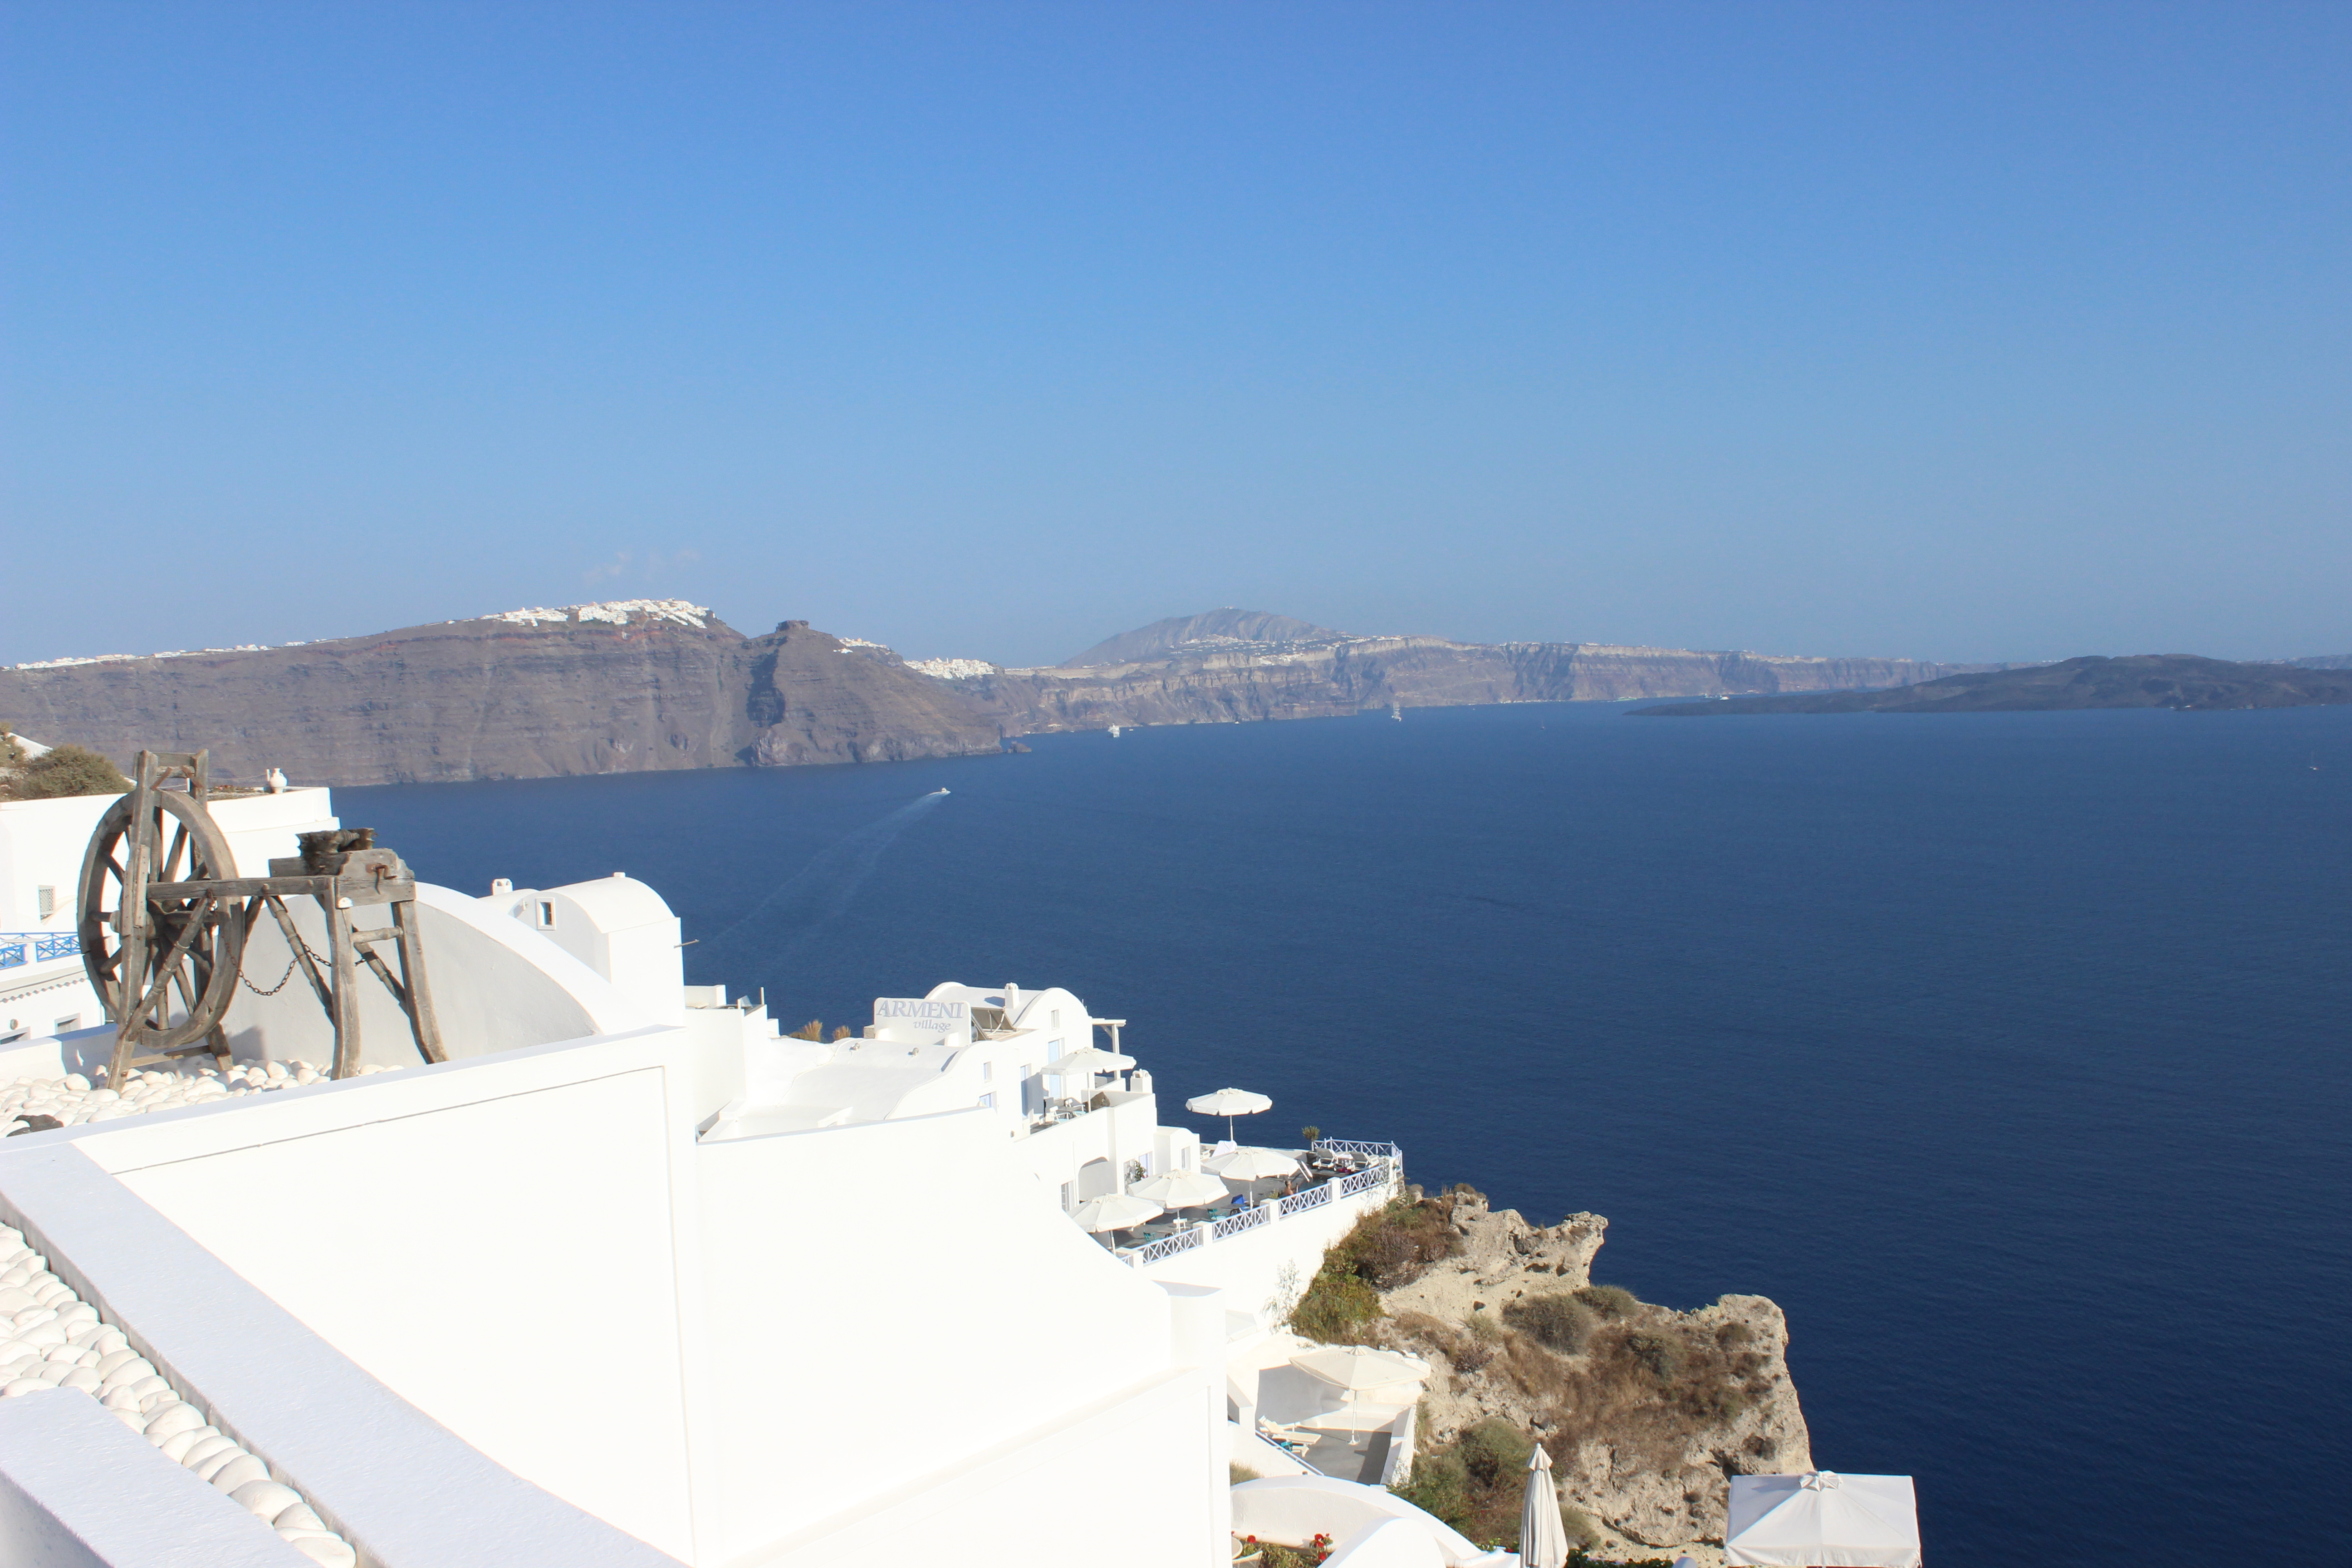 21. Breathtaking view with a spinning wheel - Oia, Santorini